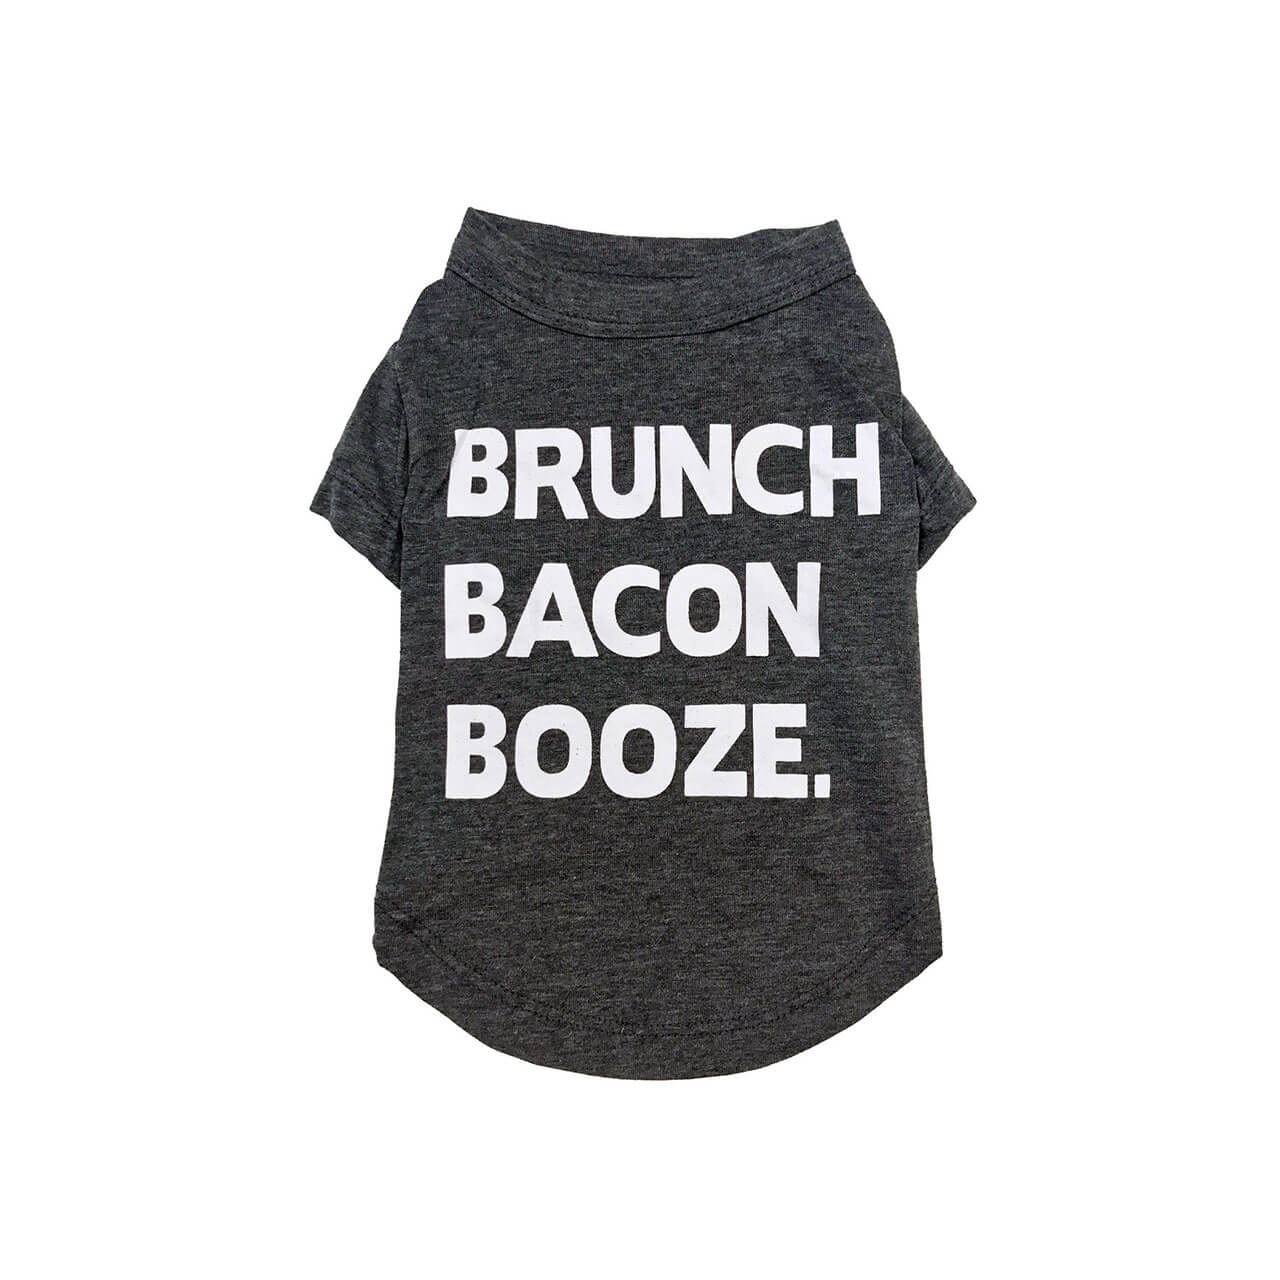 Brunch Bacon Booze